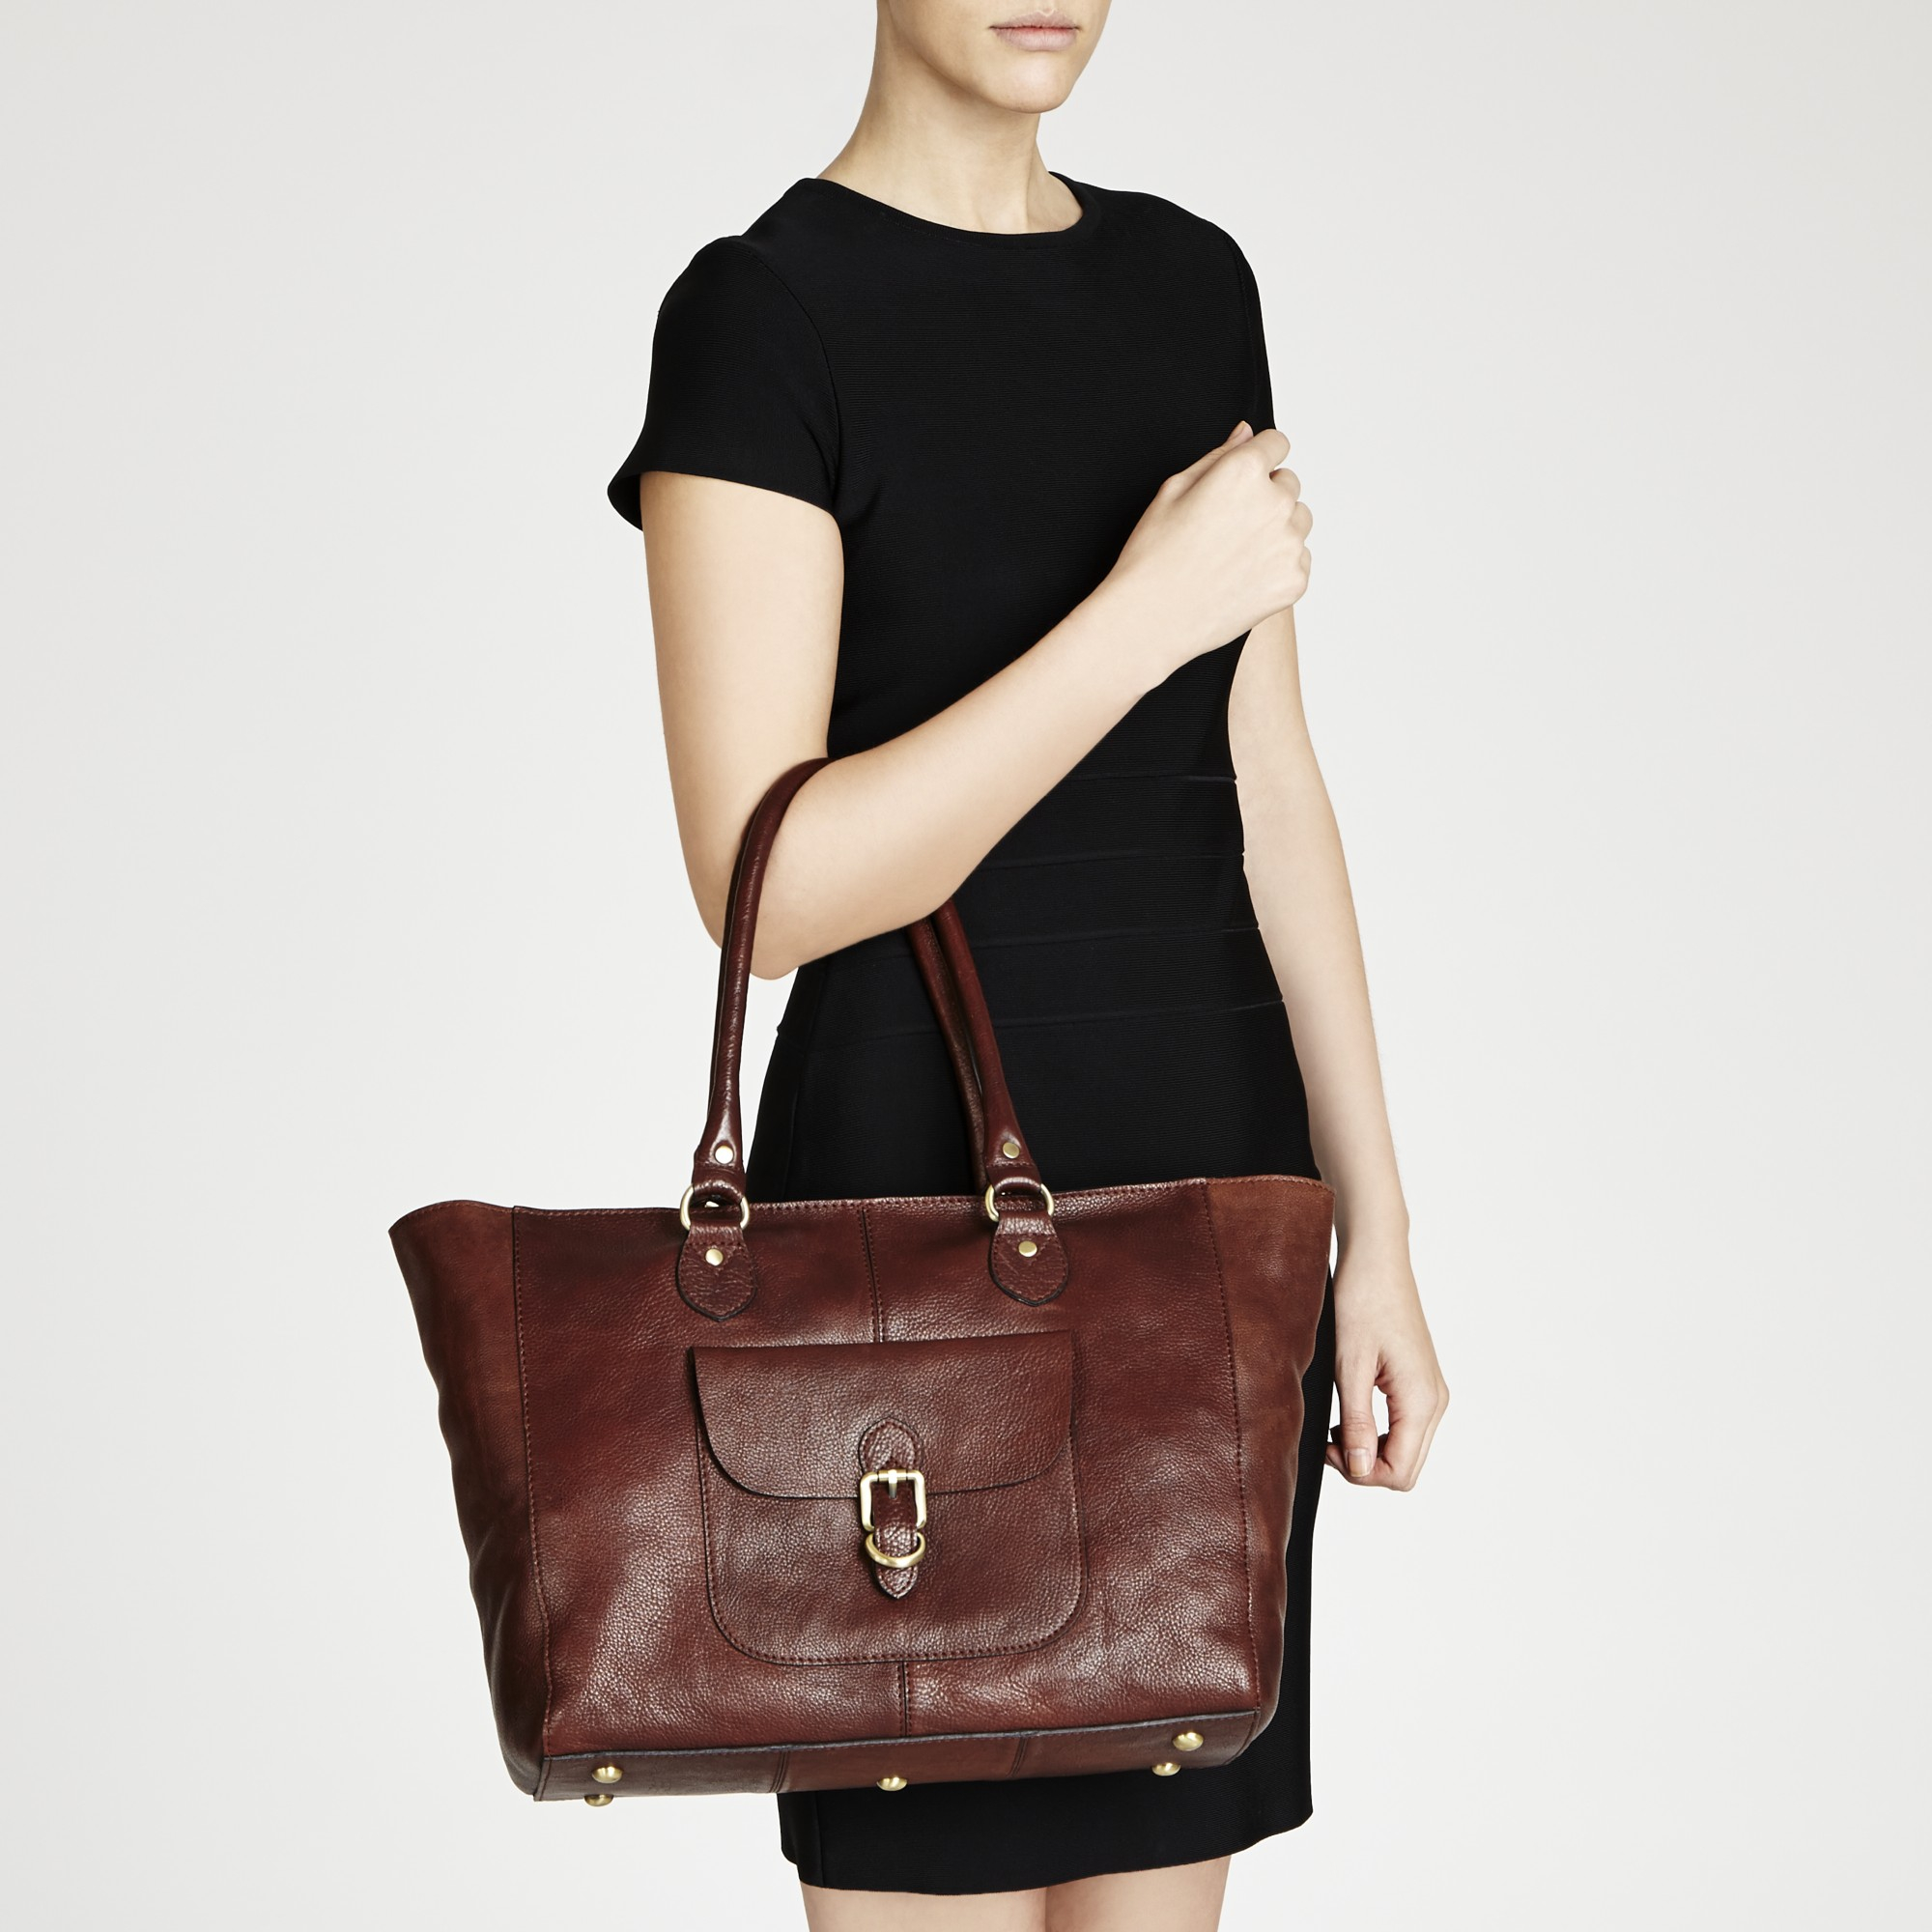 Lyst - John Lewis Winchester Large Leather Tote Bag in Brown